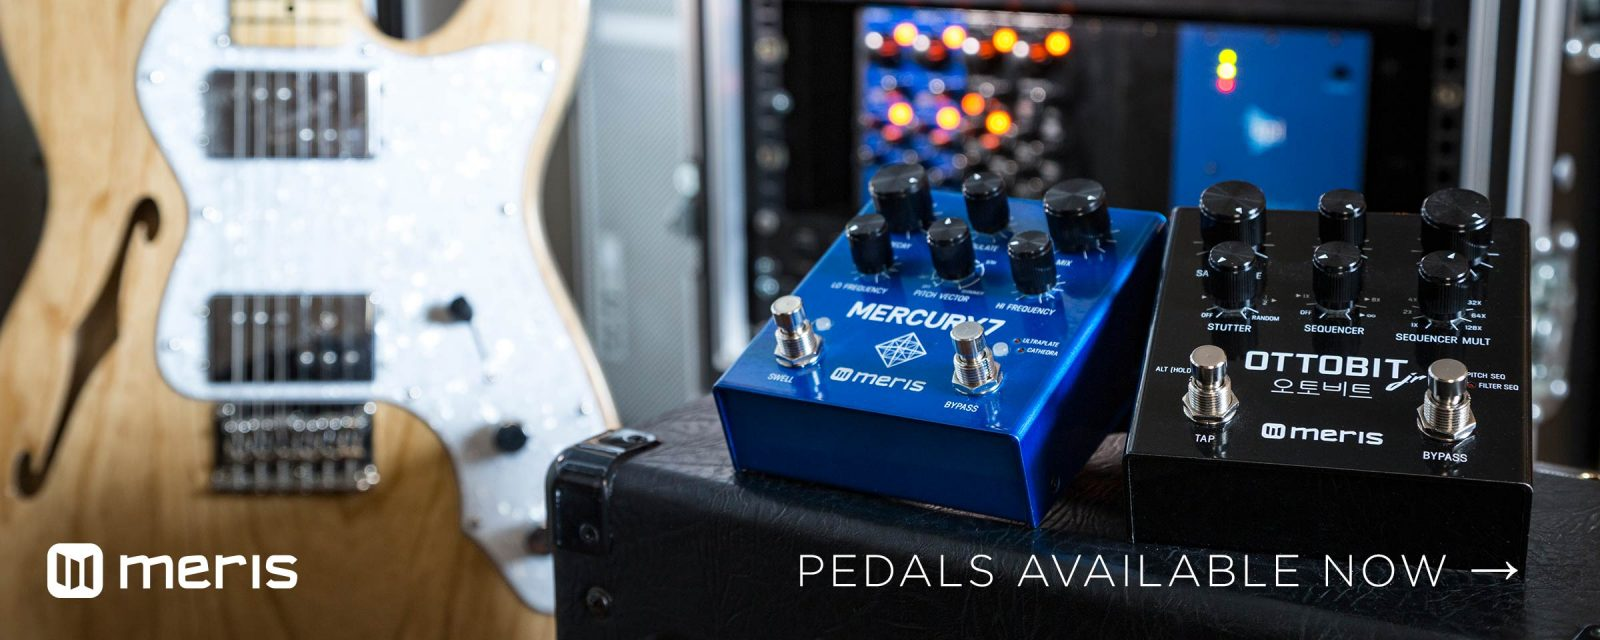 Meris Pedals Now Available